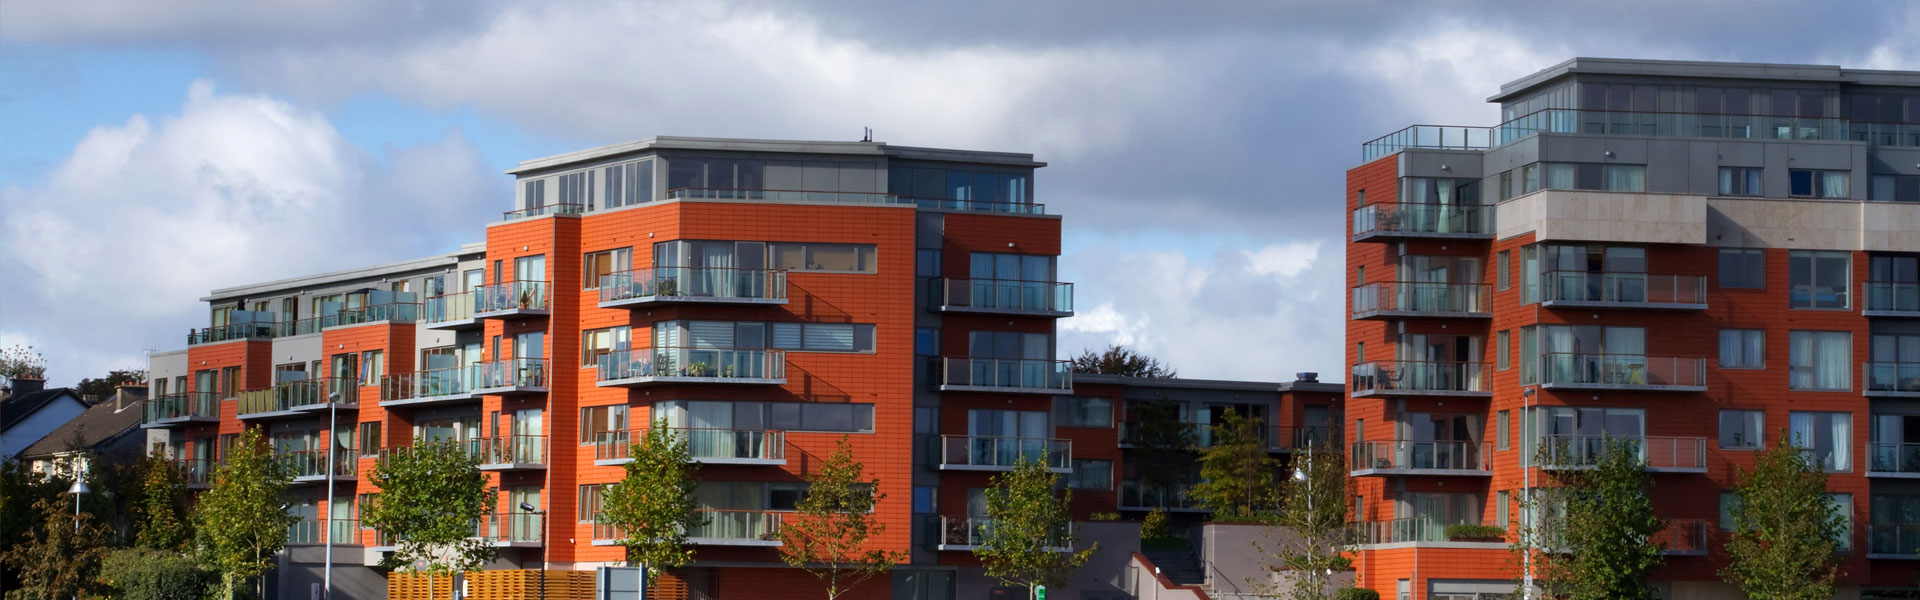 professional Commercial property management in Carrick-on-Suir